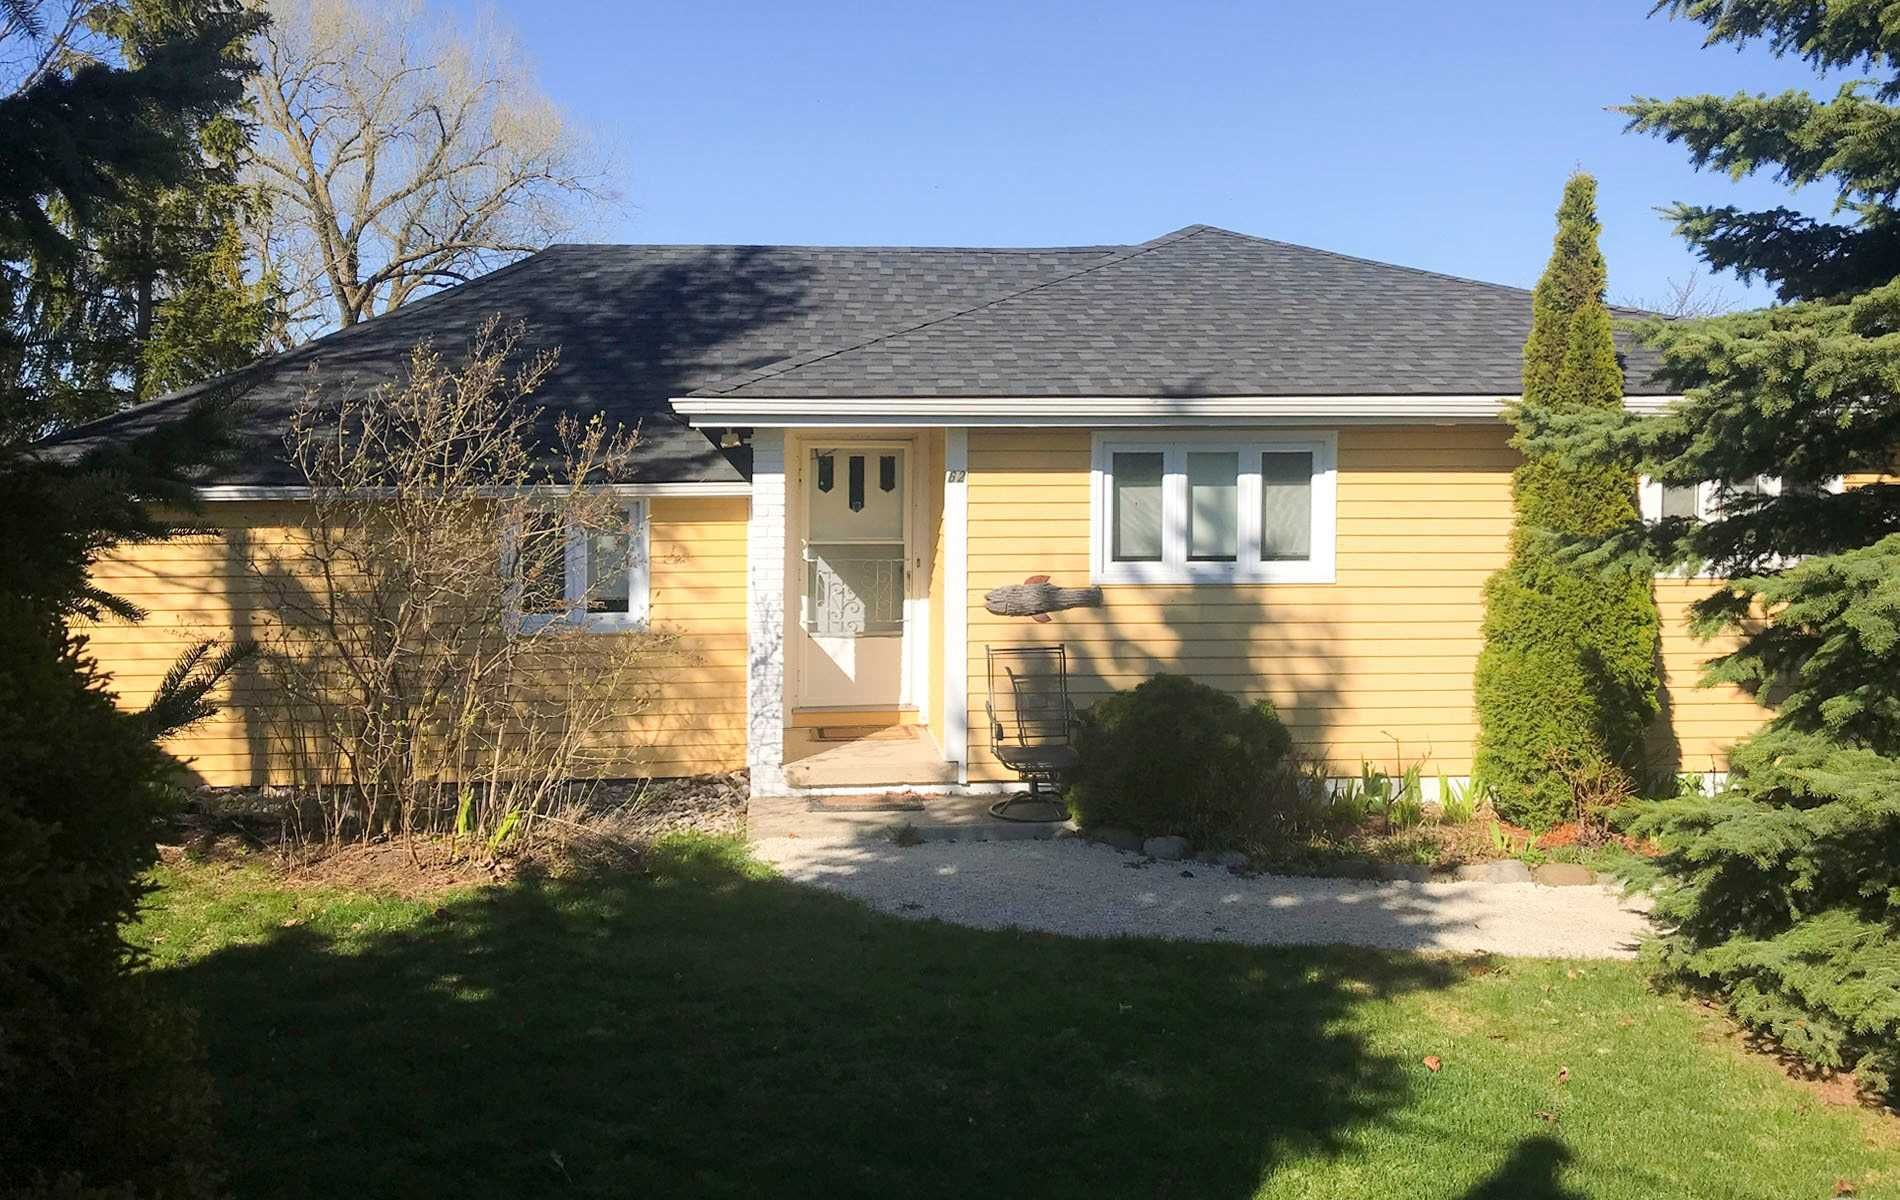 Main Photo: 62 Cottage Avenue in Blue Mountains: Thornbury House (Bungalow) for lease : MLS®# X4754668